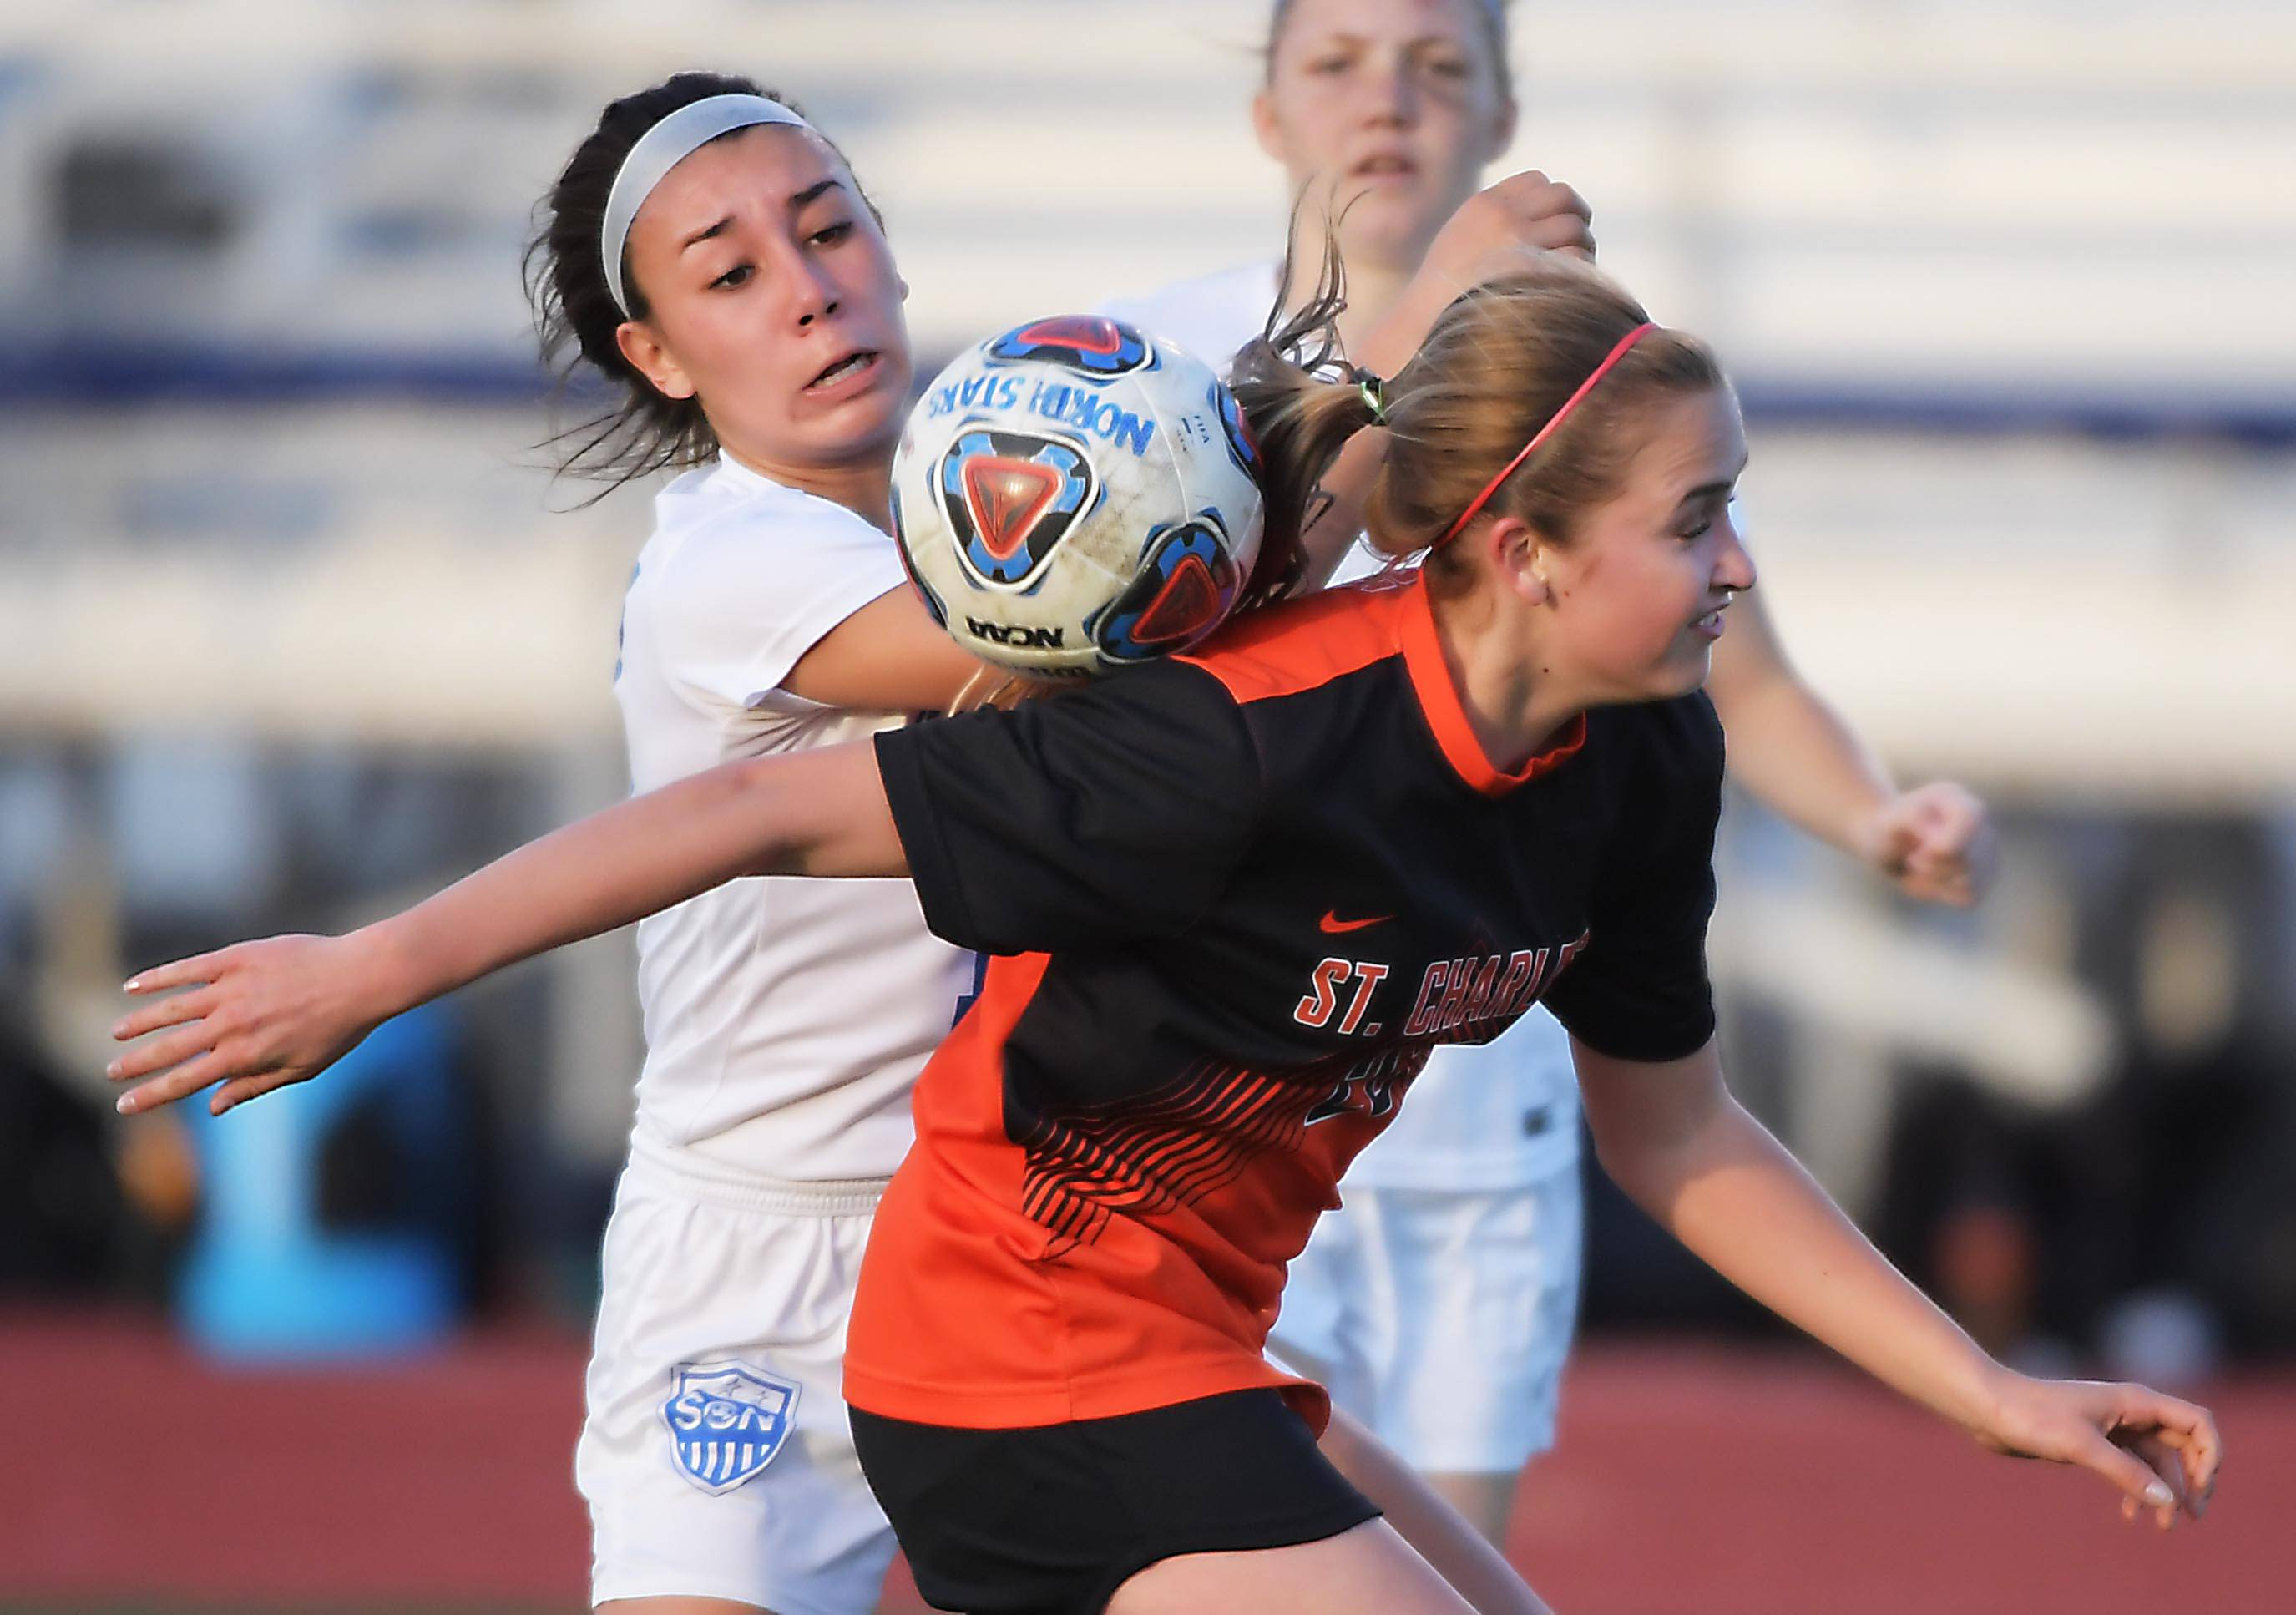 St. Charles North's Claudia Najera keeps her eye on the ball as it bounces on the shoulder of St. Charles East's Lindsey Rzeszutko in a girls soccer game at North High School Tuesday.